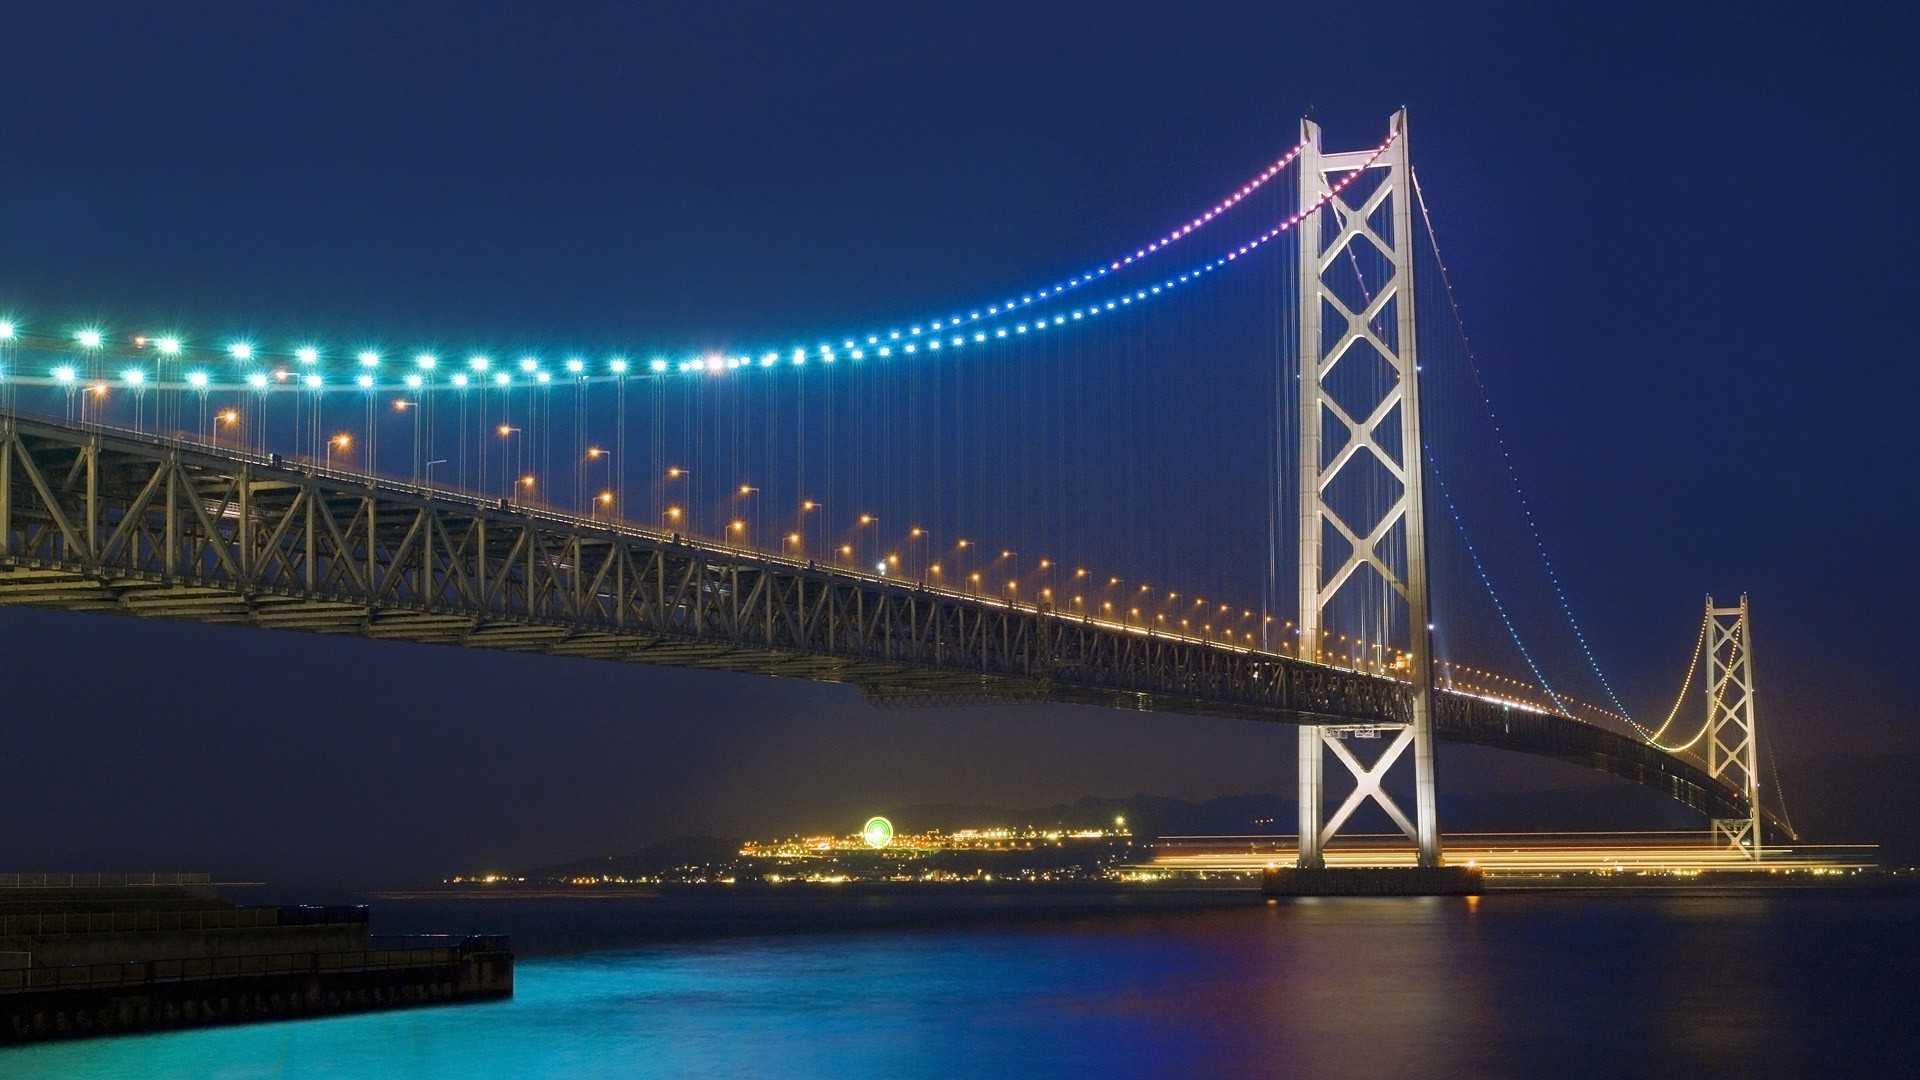 General 1920x1080 Akashi Kaikyō Bridge bridge architecture Japan night lights sea